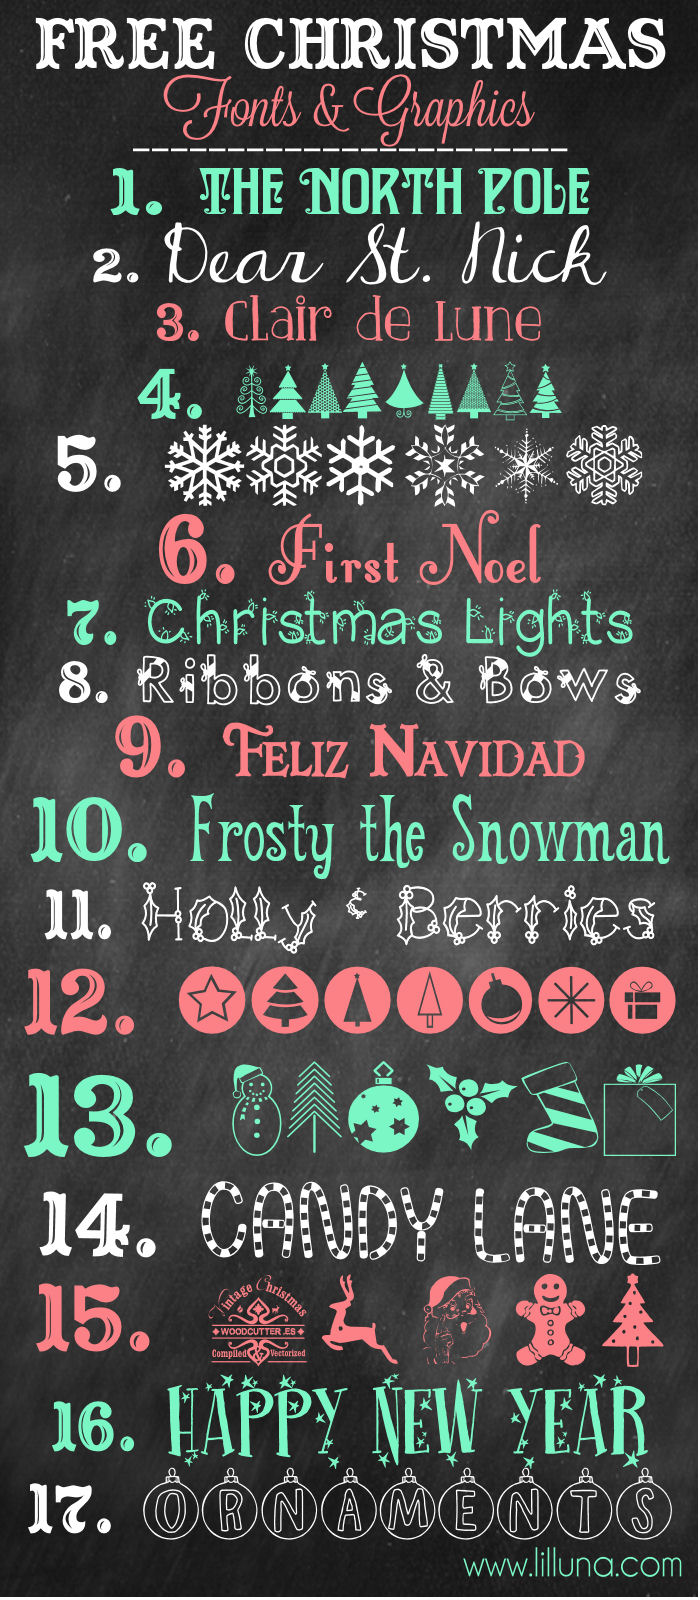 free christmas fonts and graphics